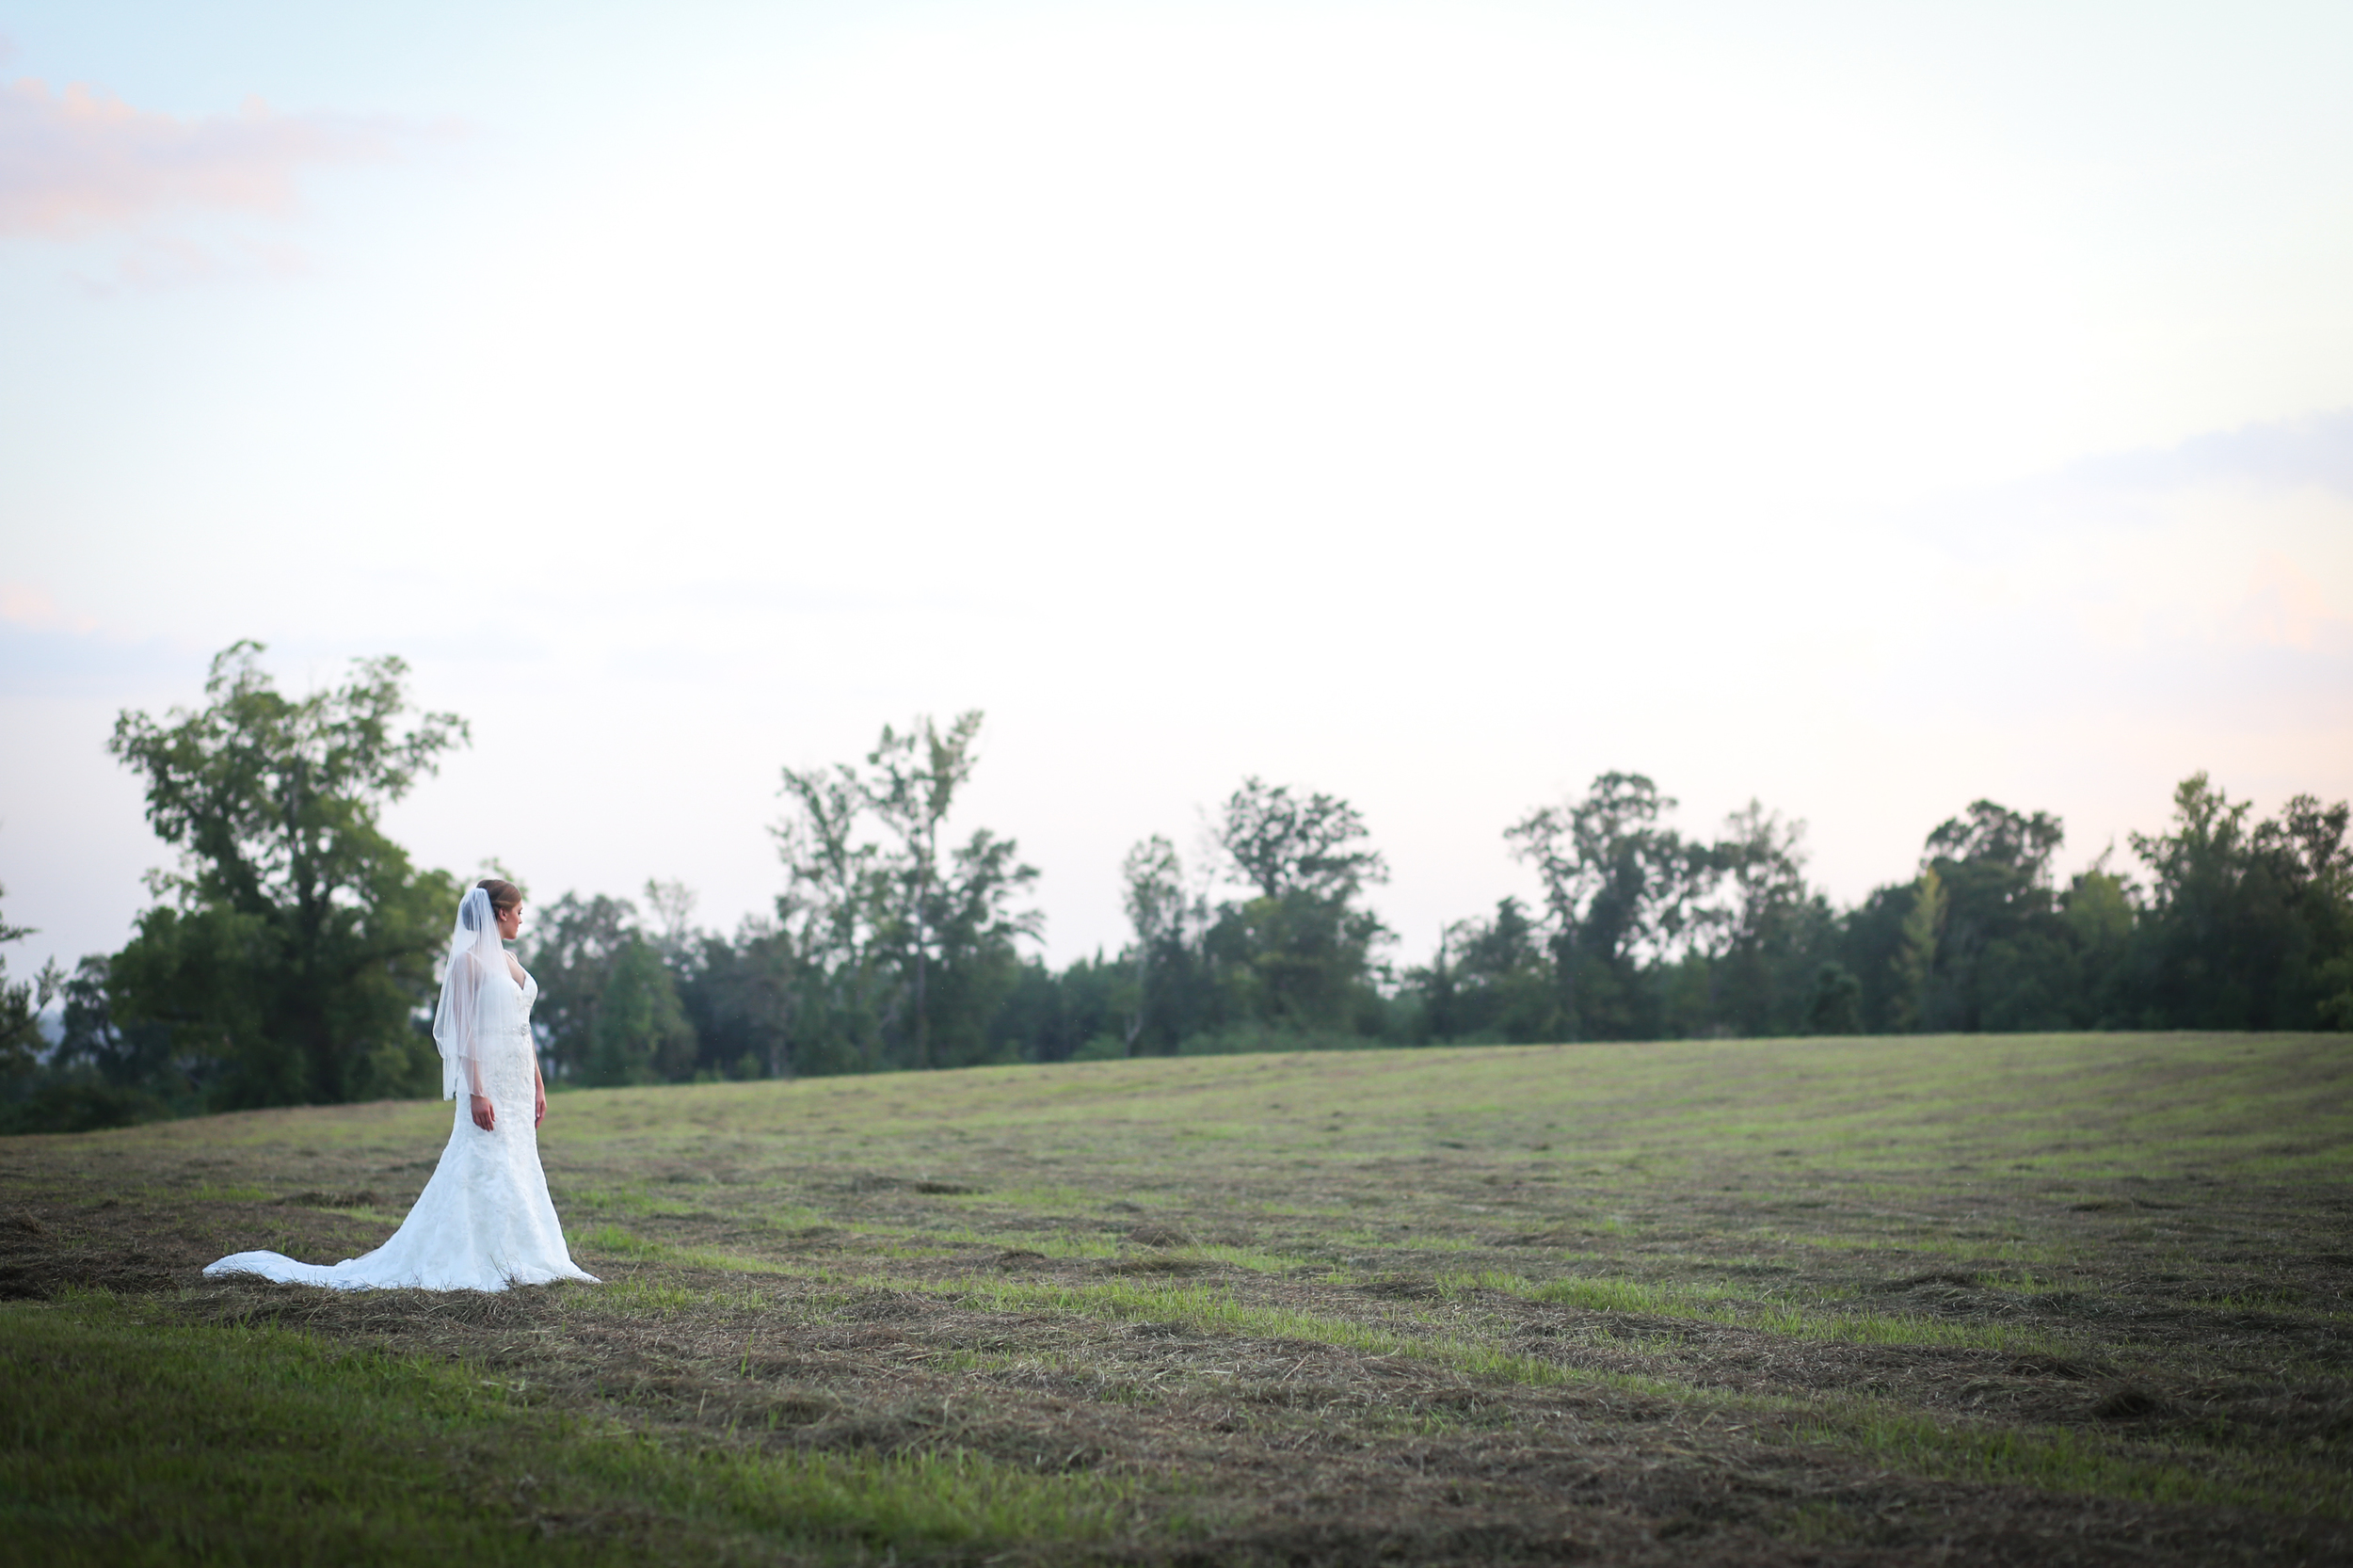 Chelsy Smith during her bridal portraits in Camden, Alabama. Photo by Michelle Taulbee Photography